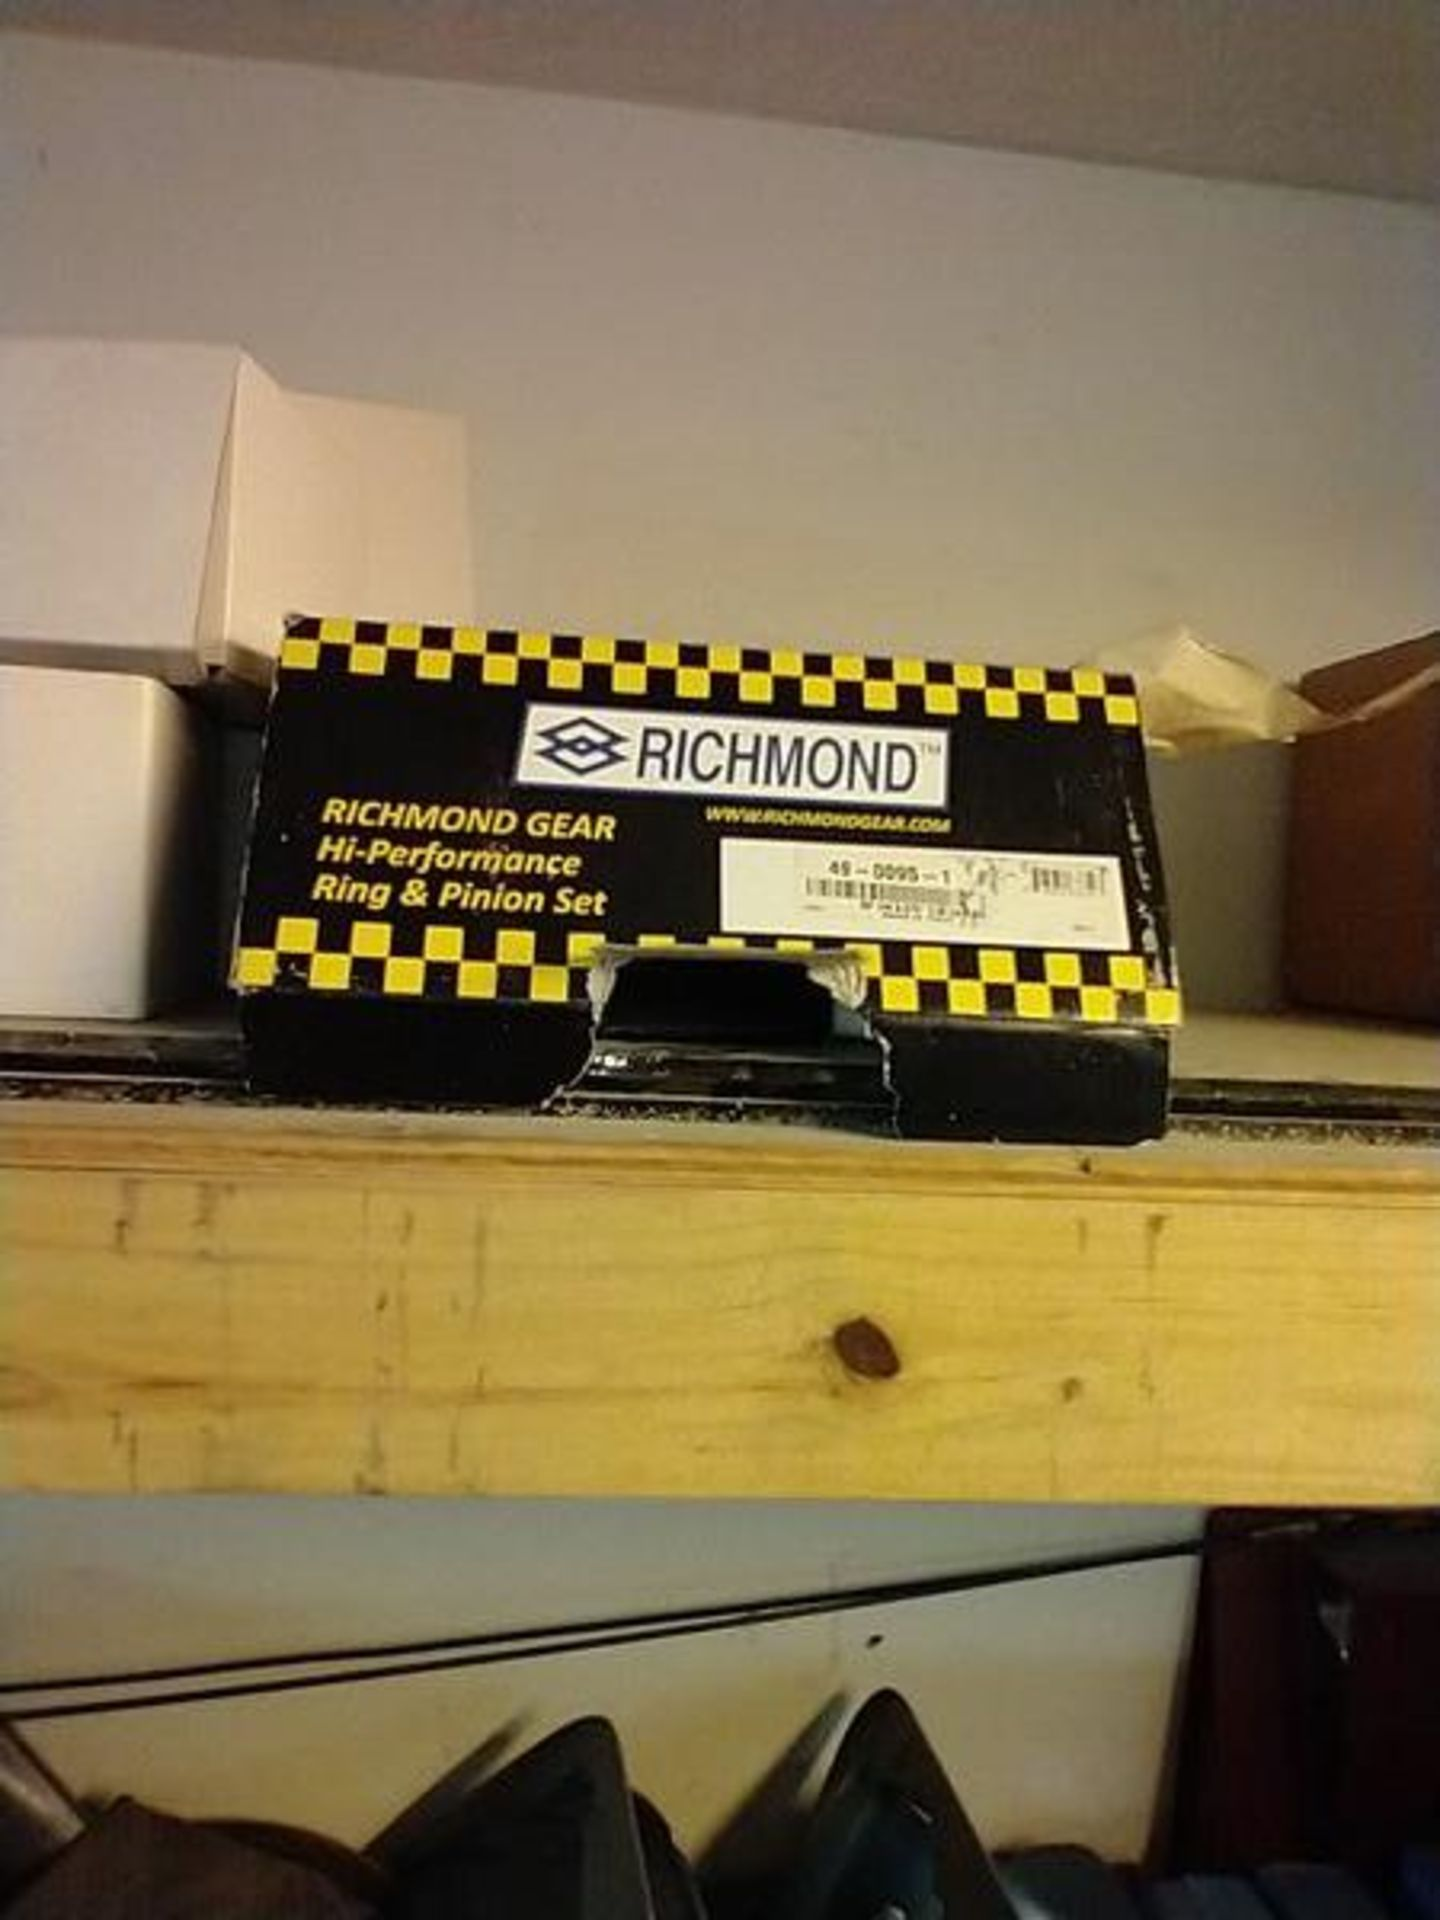 LOT OF ASSORTED CAR PARTS ON 2 SHELVES AND FLOOR - Image 10 of 23